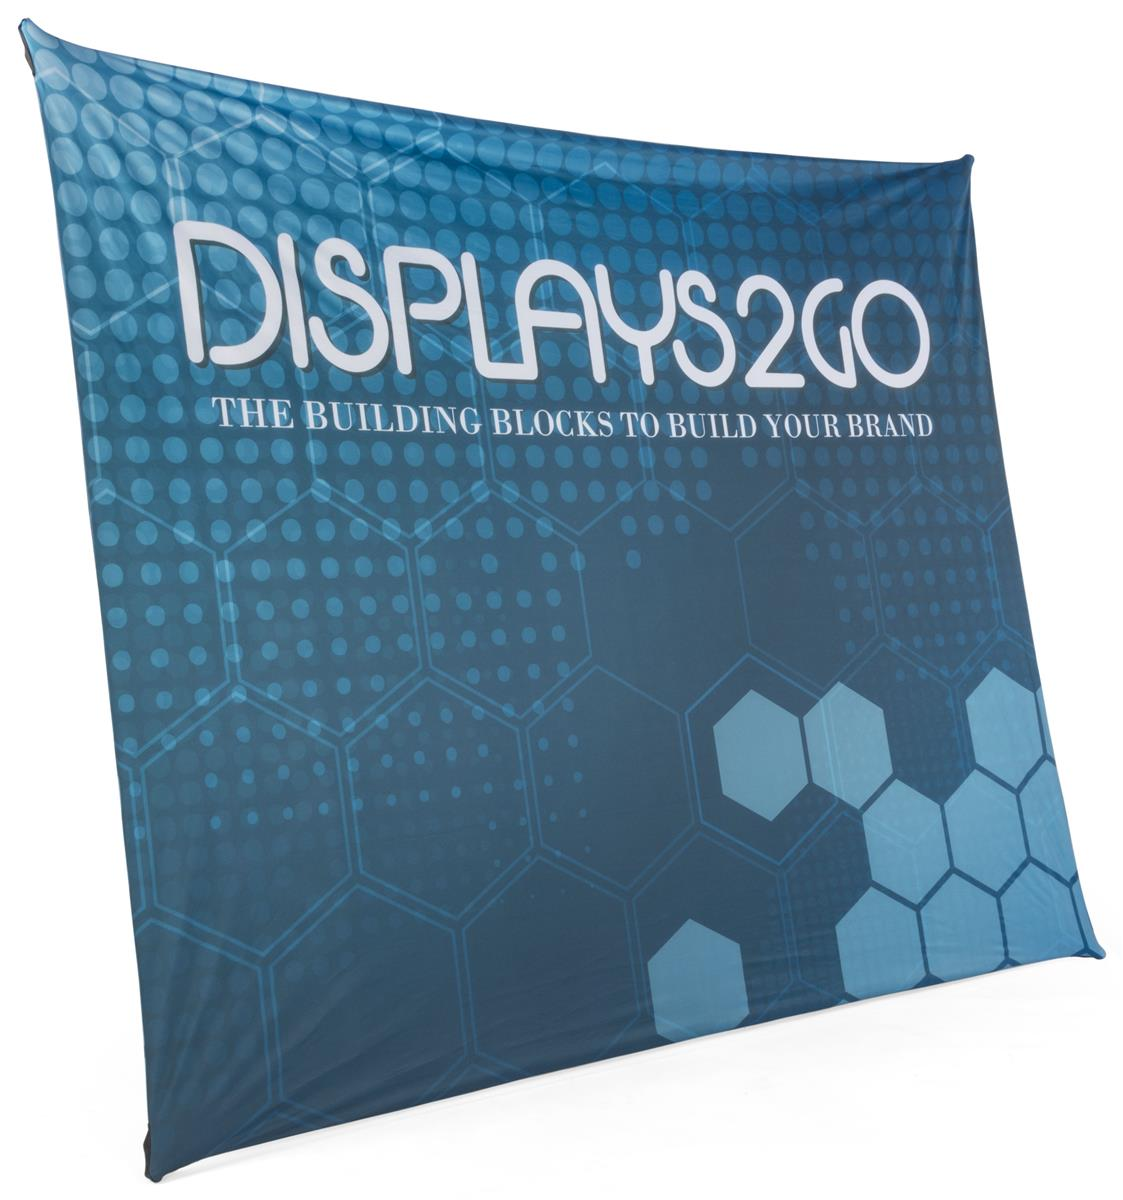 Large Format Trade Show Graphics Single Sided Printing